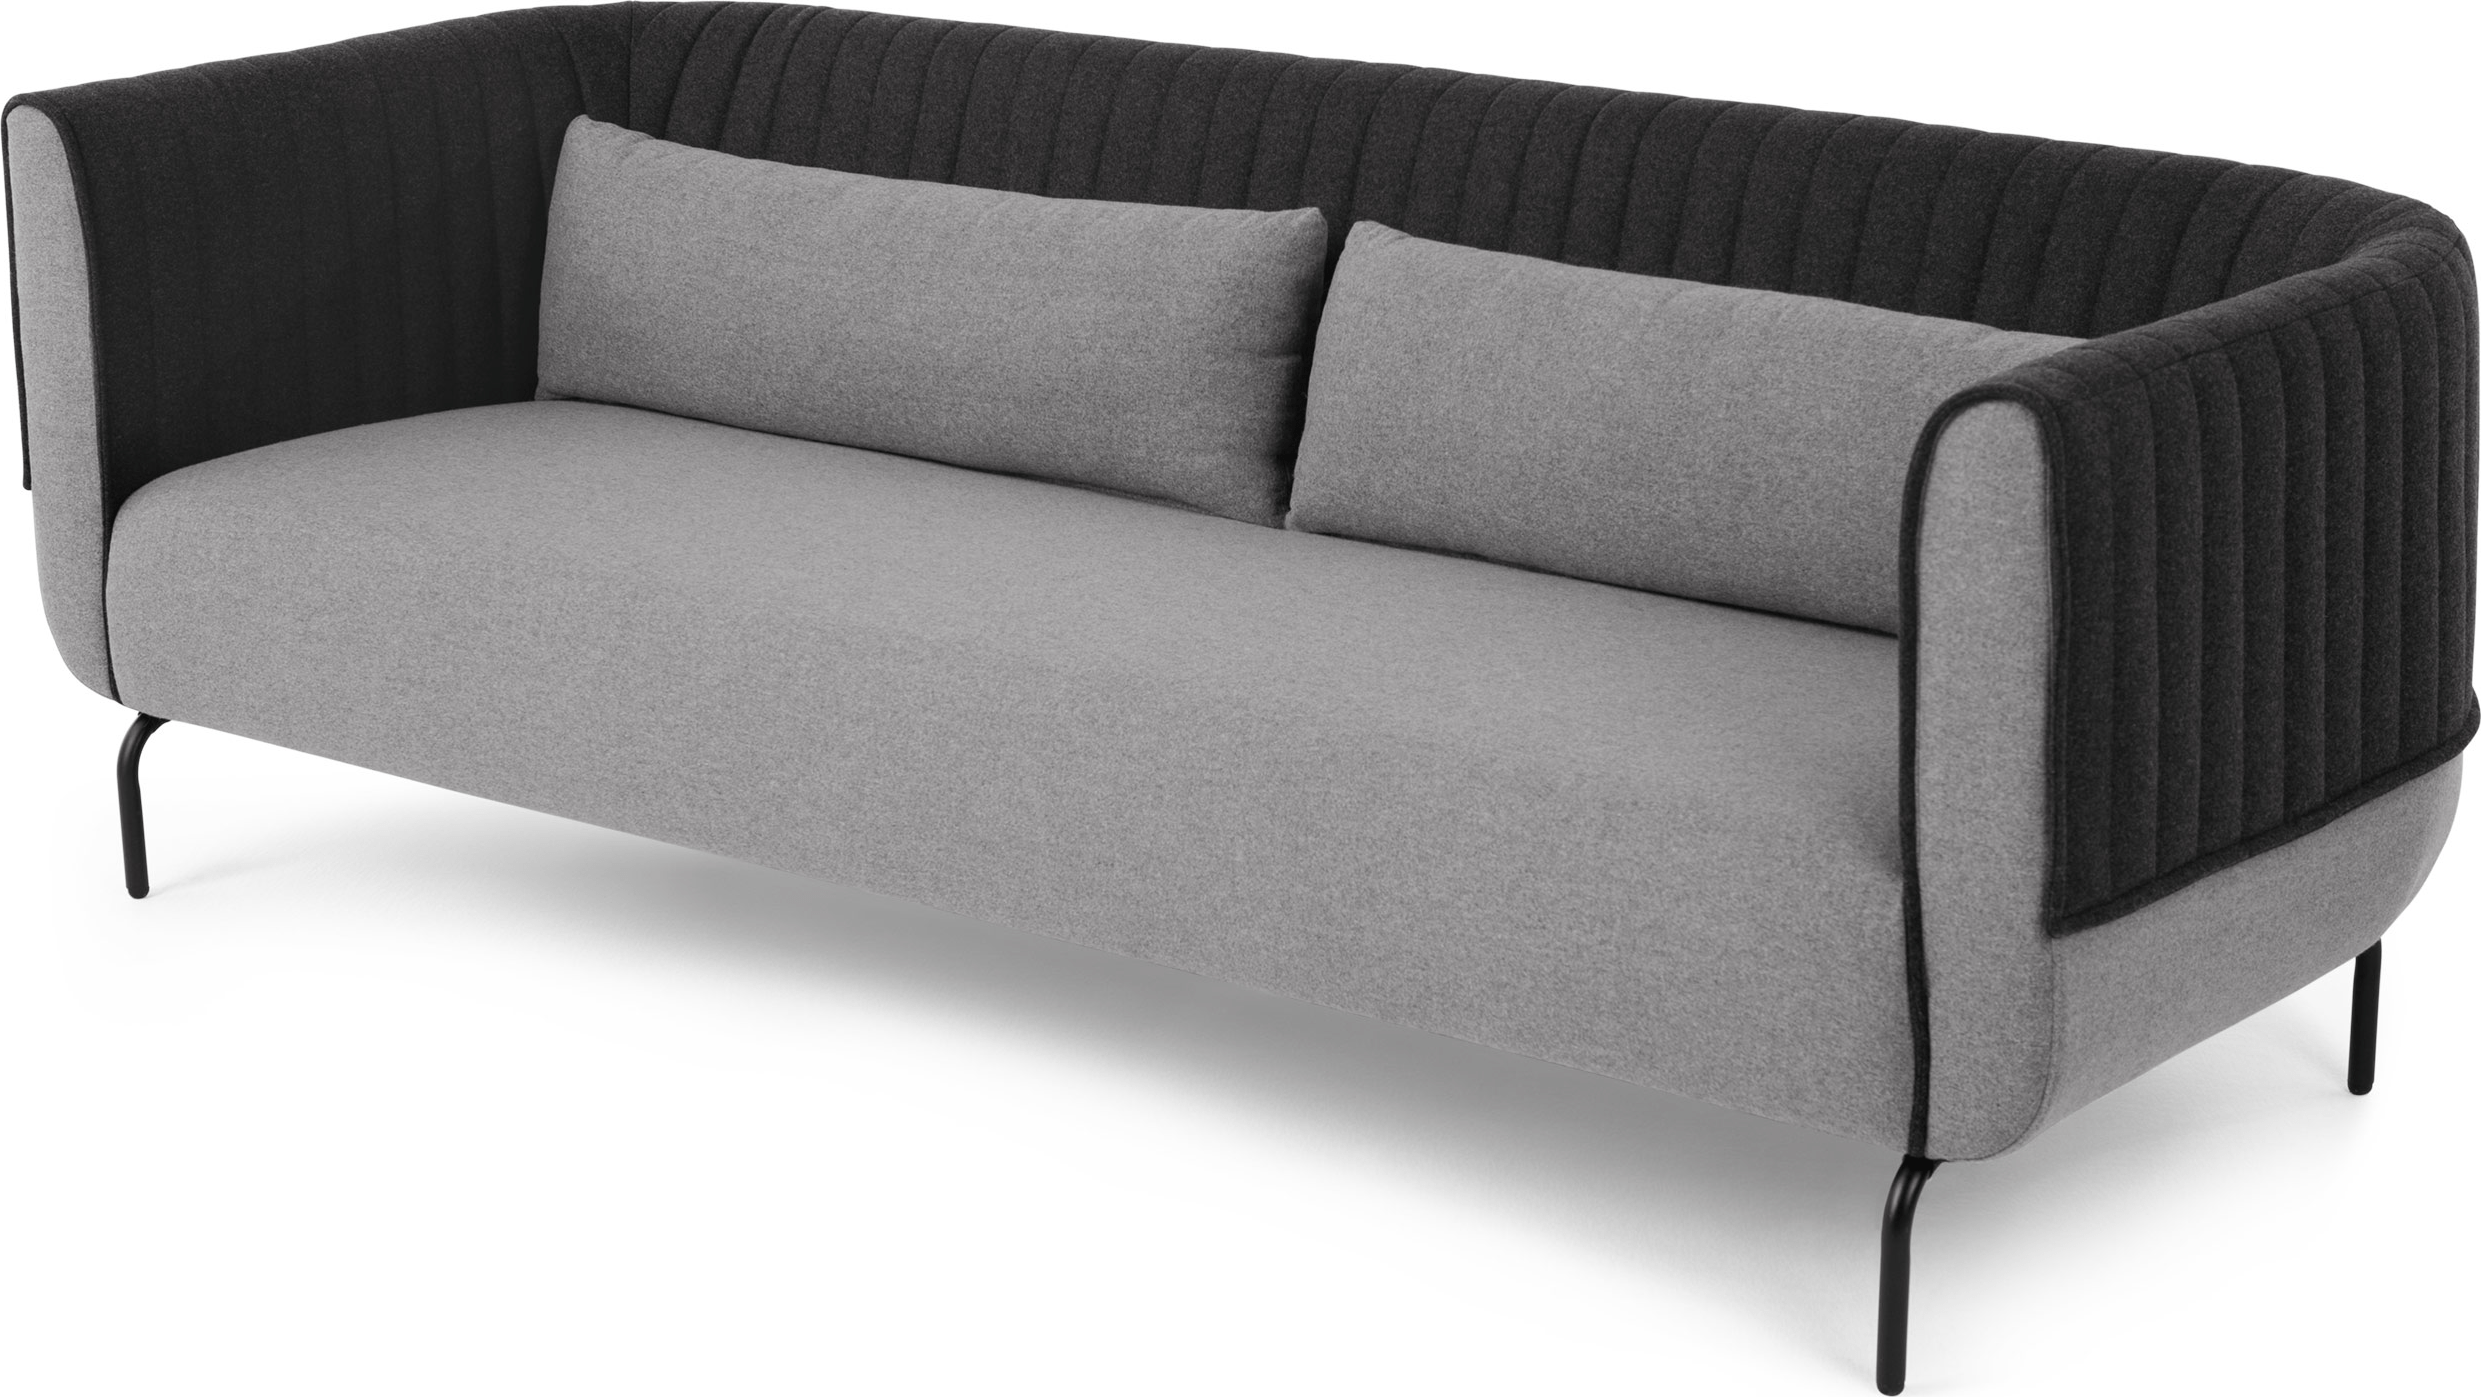 Sofa Bed Express Delivery Made 3 Seater Sofa Kestrel Whisper Grey Wool Mix Express